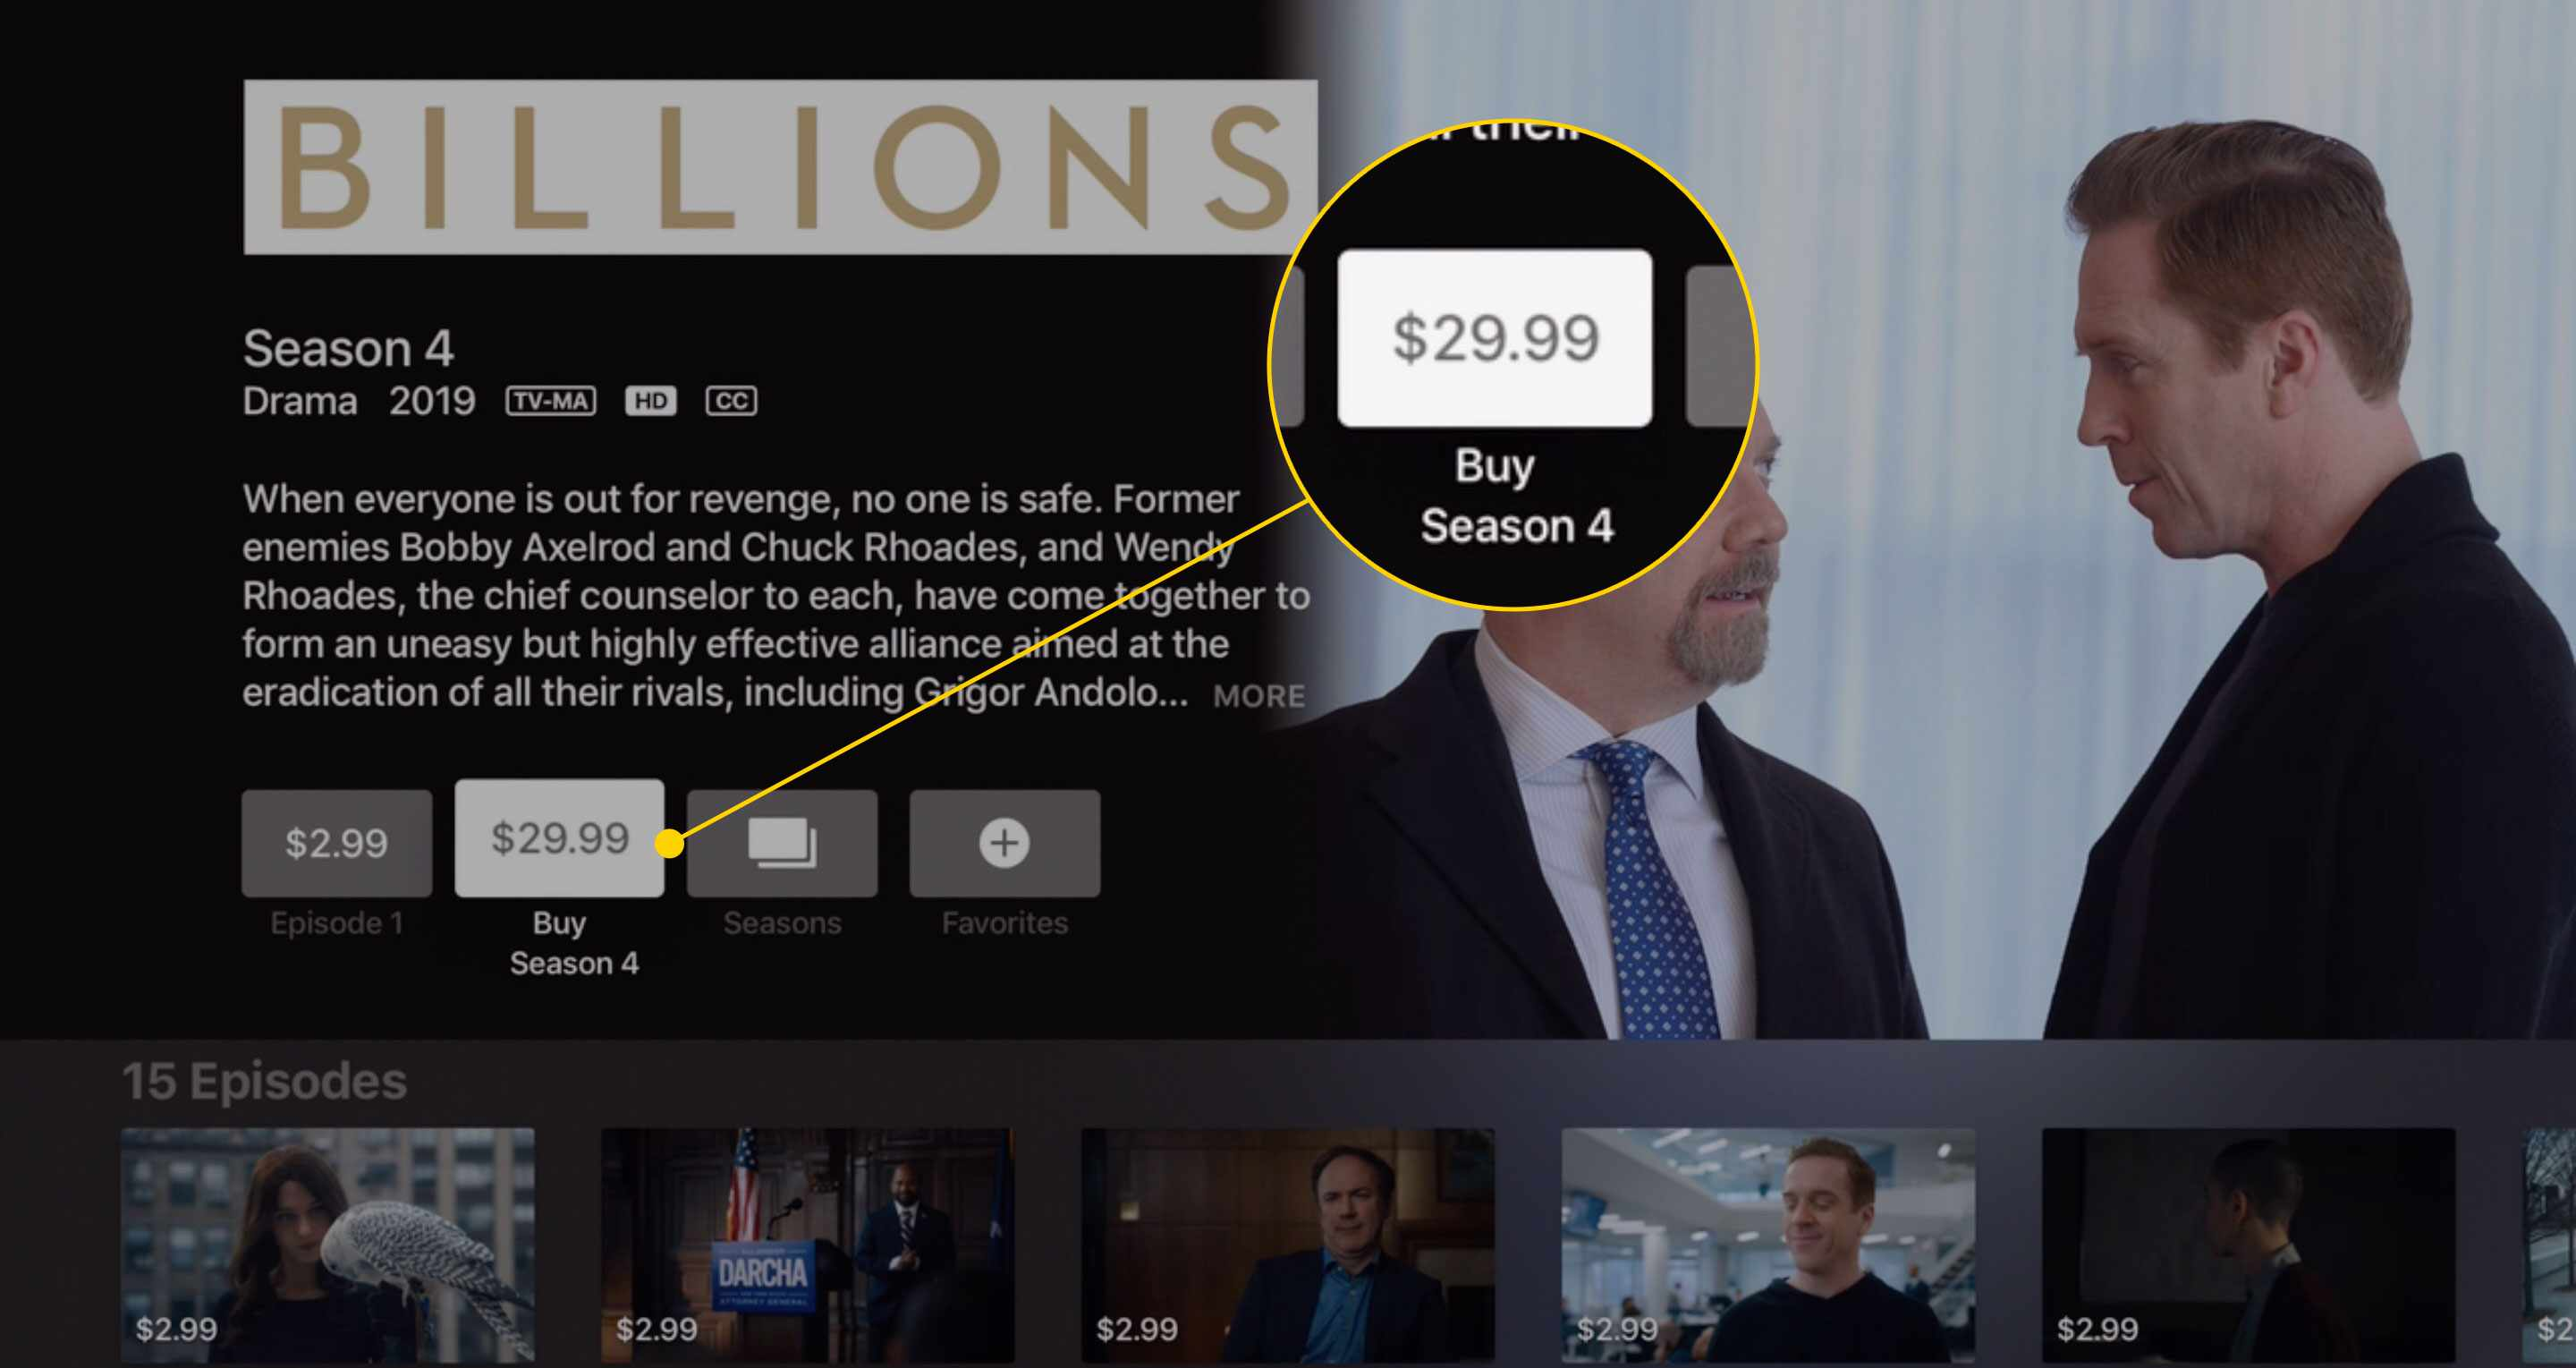 A TV show page open in iTunes with the Buy Season button highlighted